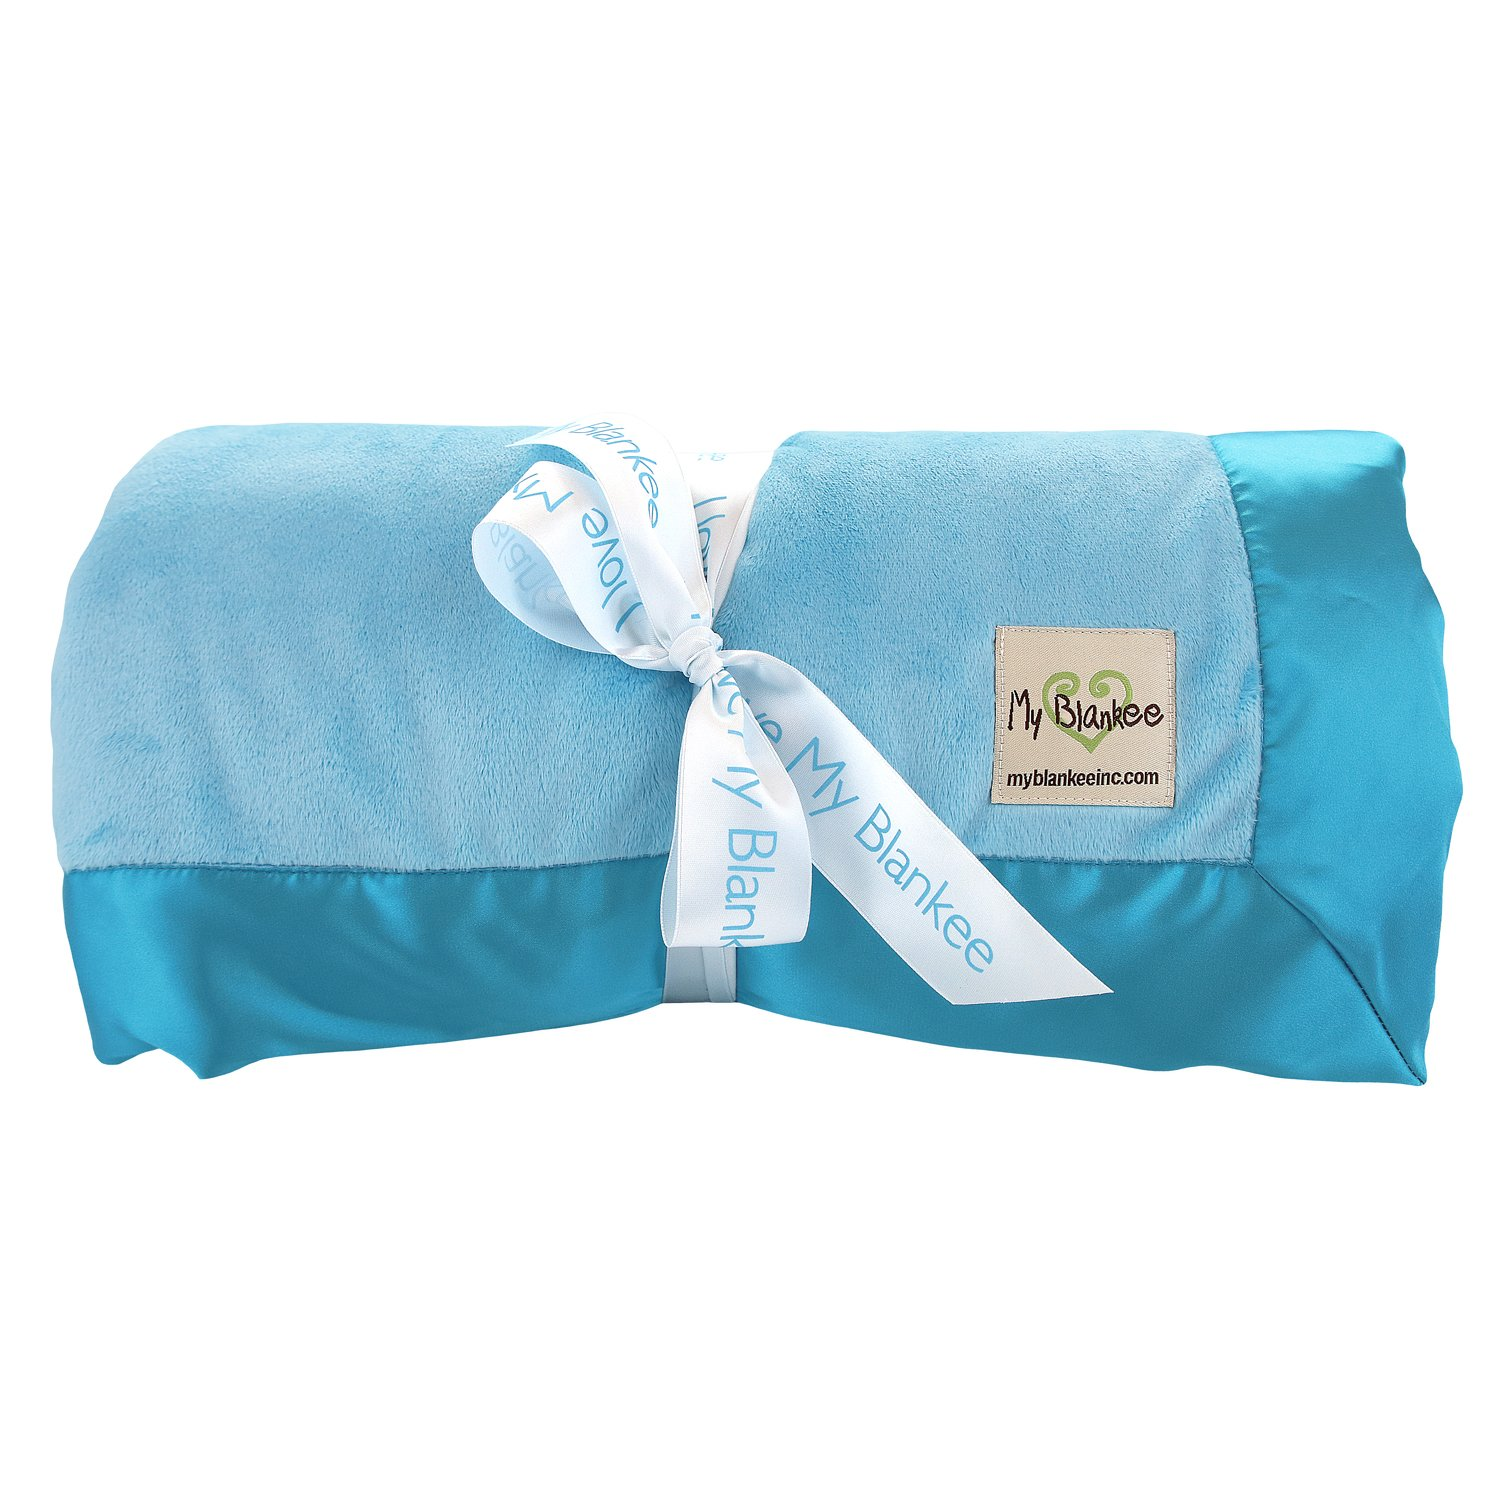 My Blankee Minky Solid Super King Blanket with Flat Satin Border, Turquoise, 114'' x 94''